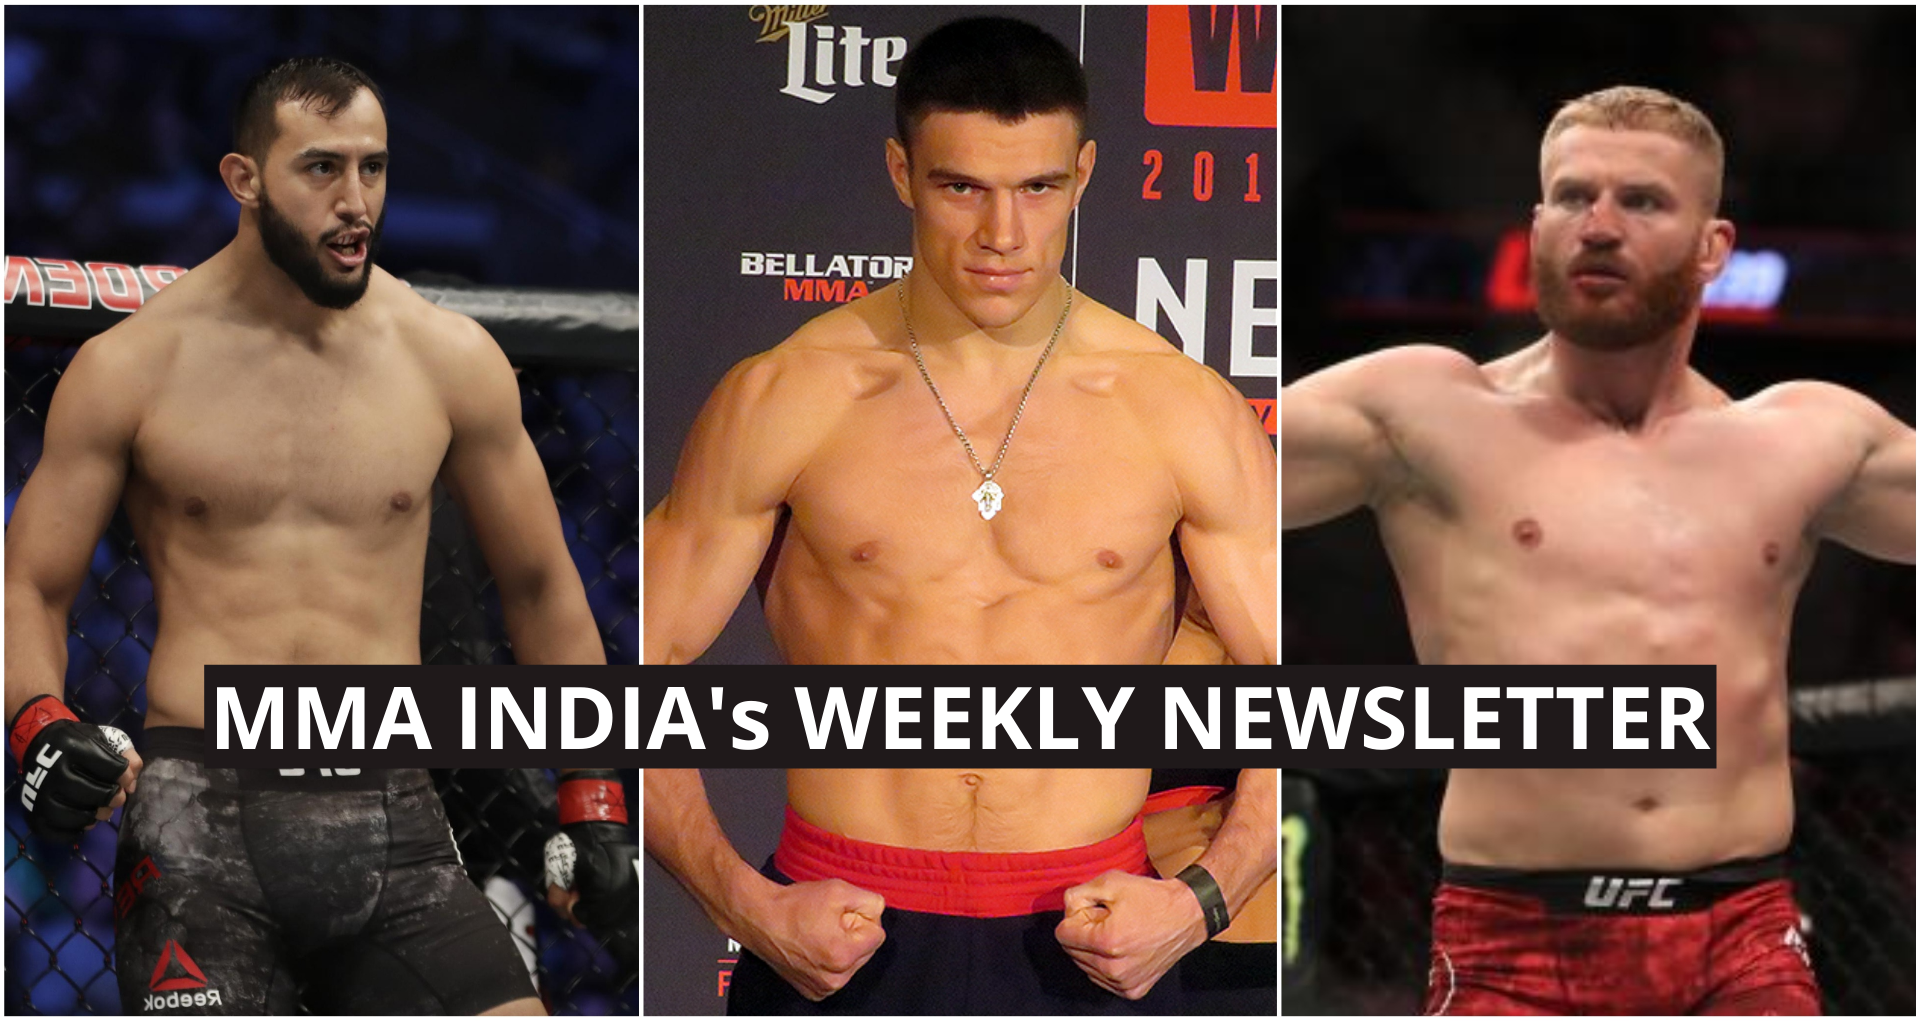 MMA India's Weekly Roundup (18-24 August): Reyes and Blachowicz fight for the LHW crown, Bellator gets new LHW champion and more - Reyes